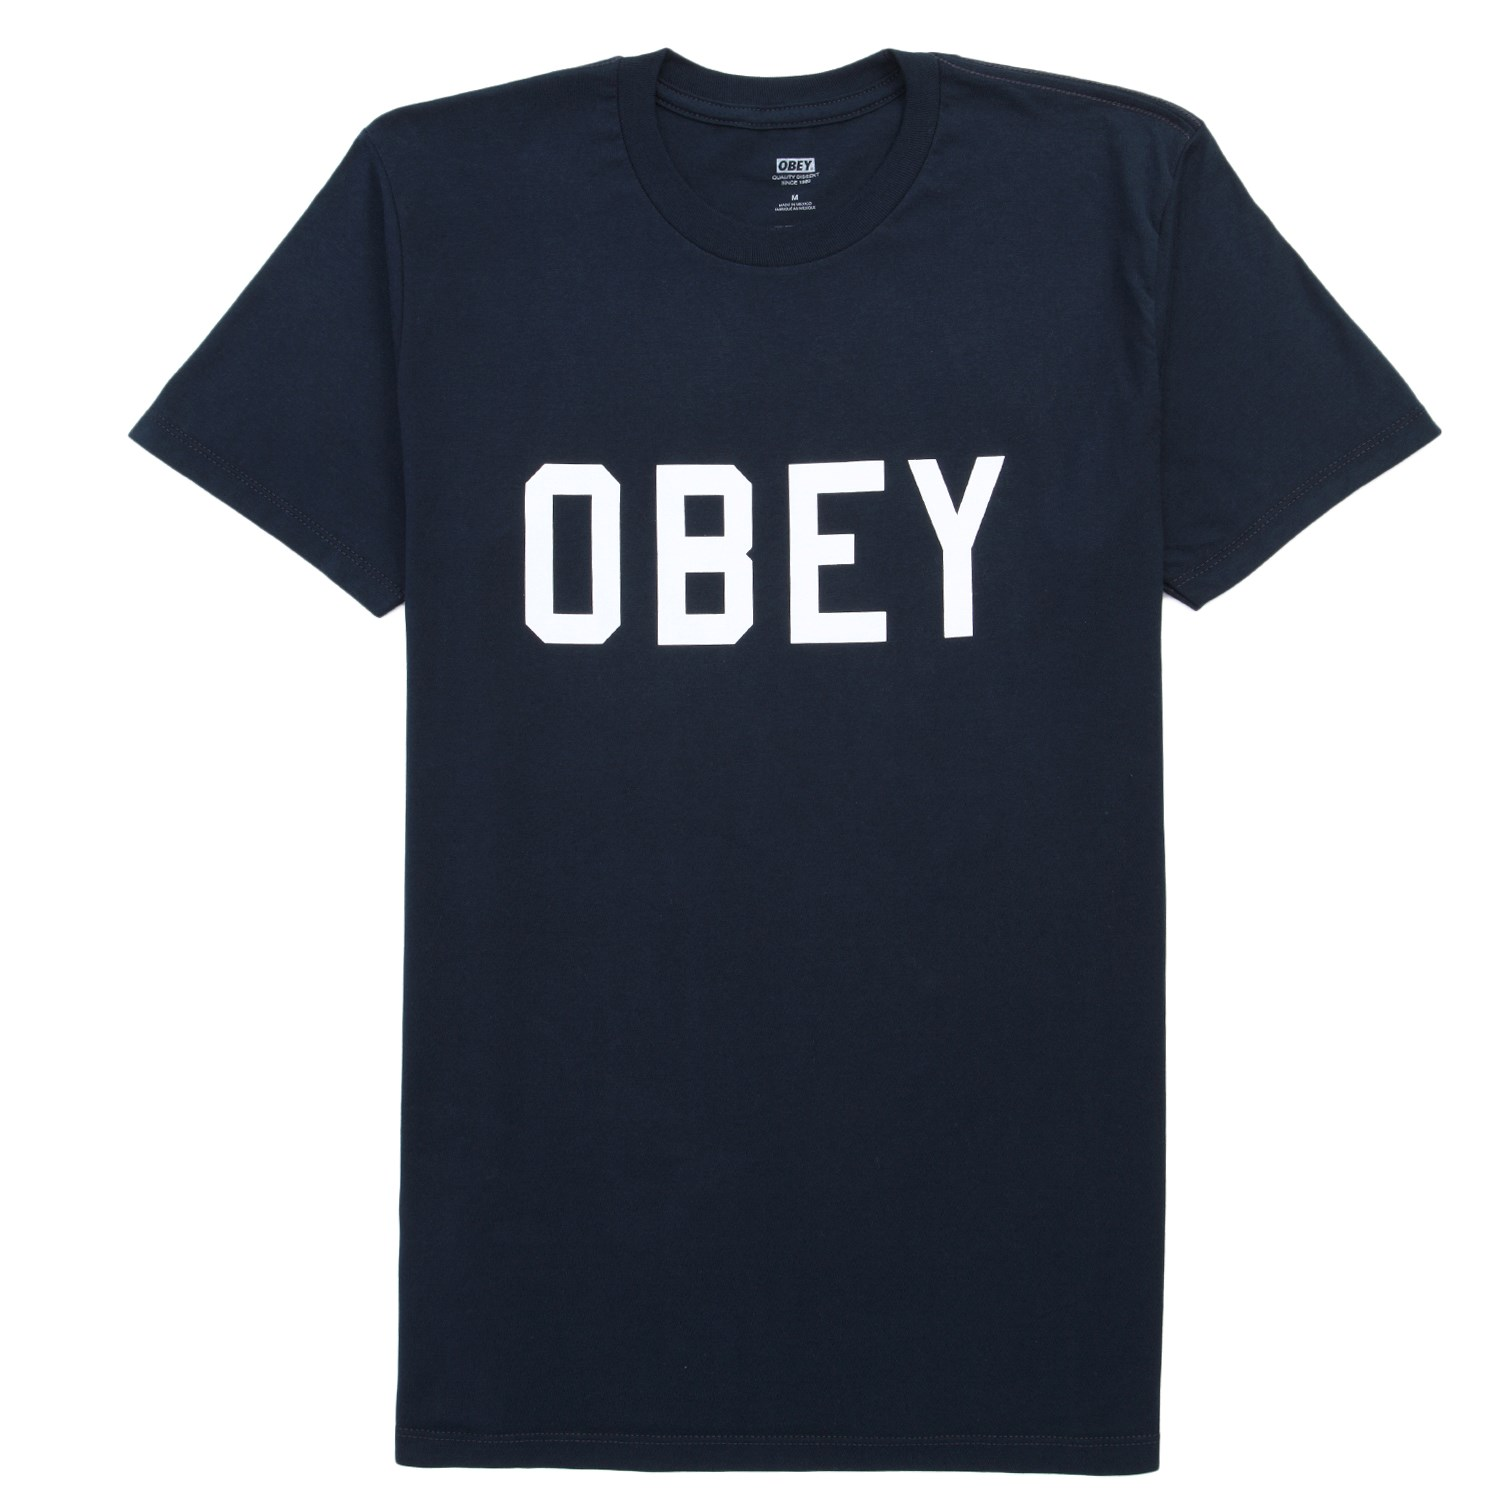 Obey Clothing Collegiate T-Shirt | evo outlet